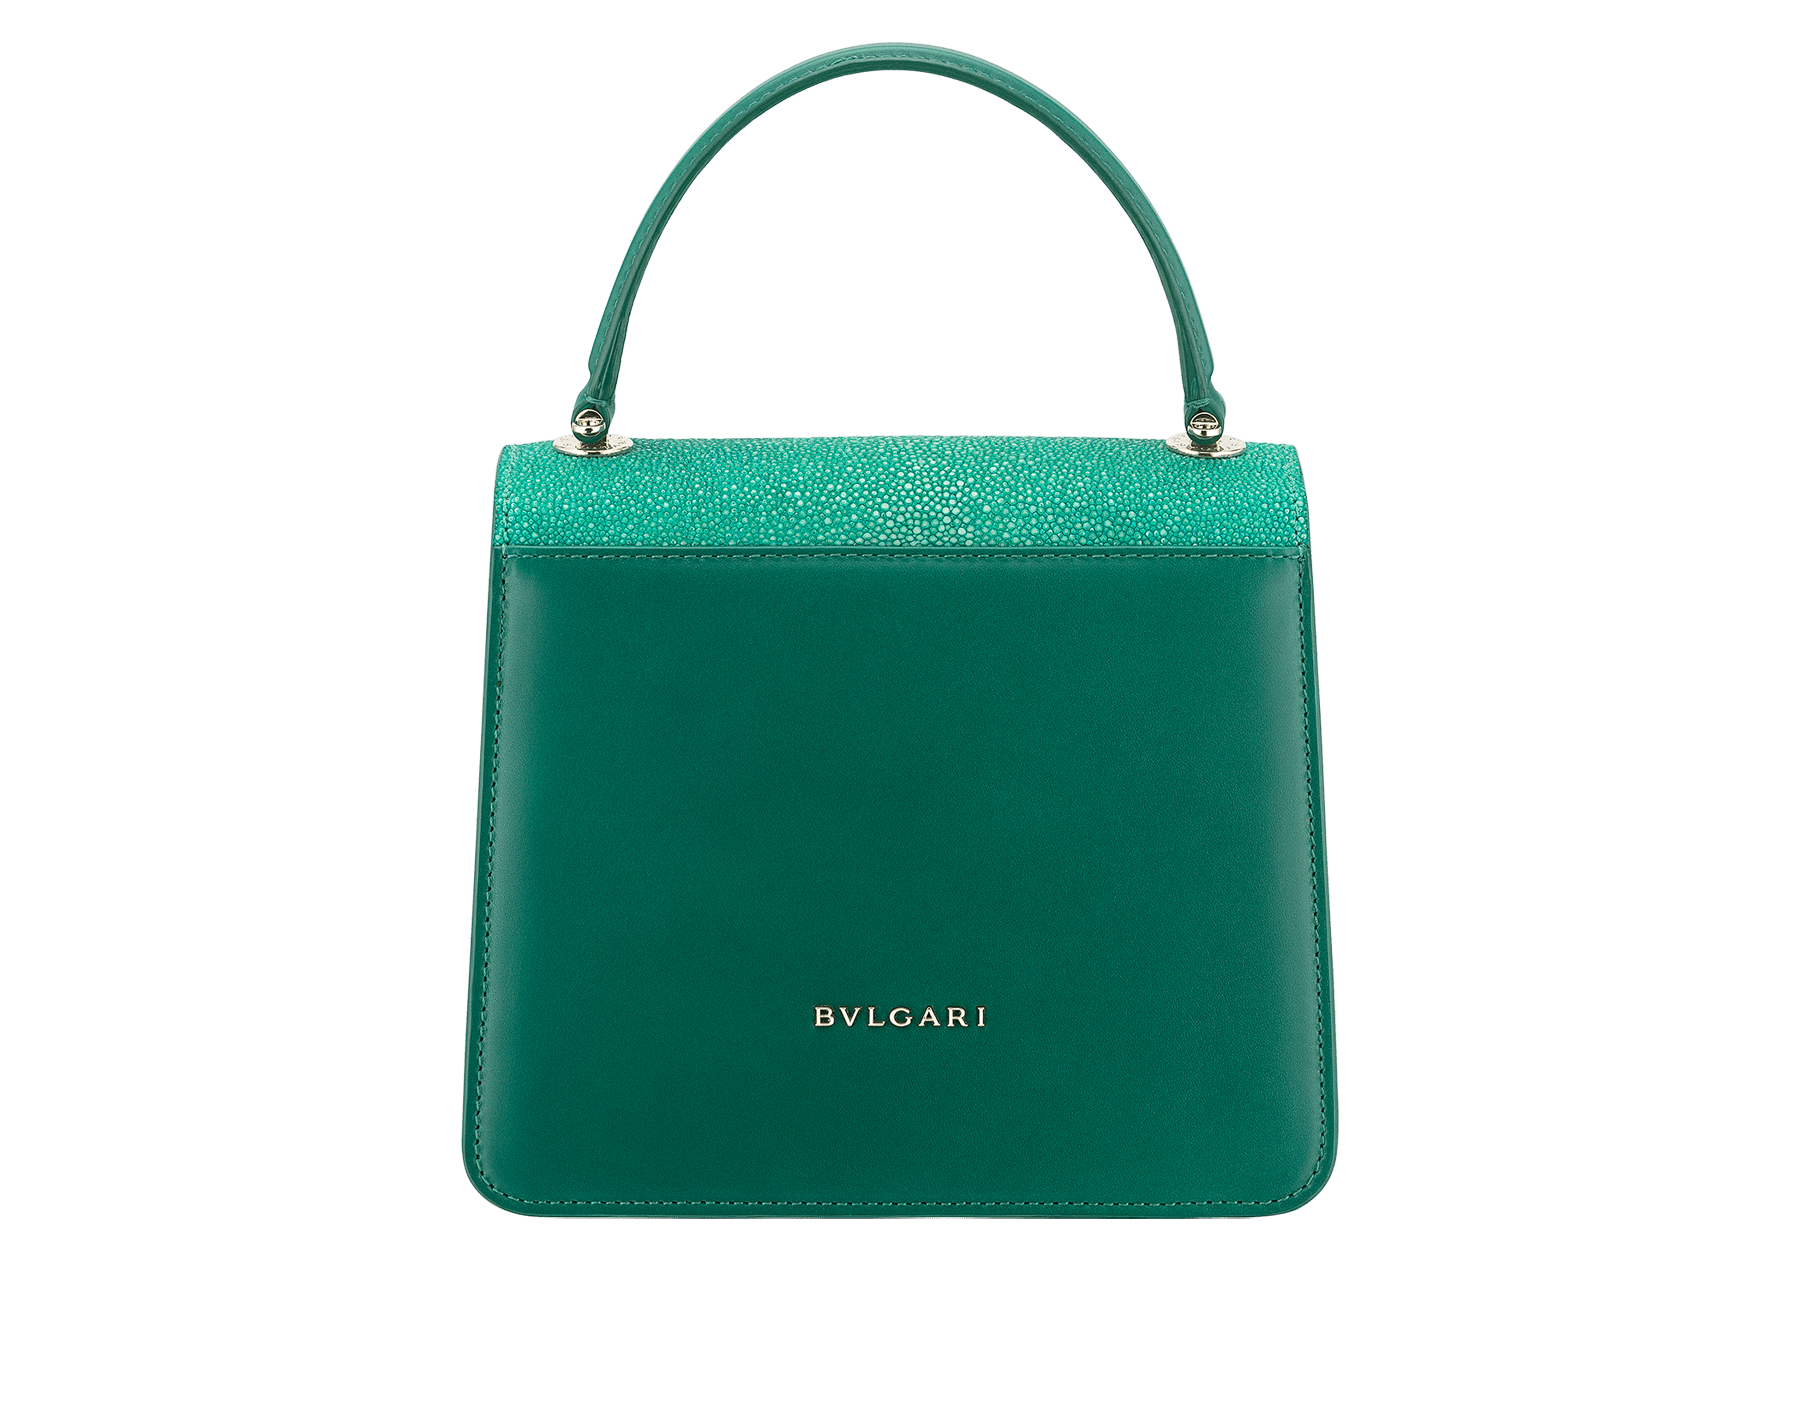 Serpenti Forever crossbody bag in sea star coral galuchat skin and smooth calf leather. Snakehead closure in light gold plated brass decorated with black and white enamel, and green malachite eyes. 752-Ga image 3